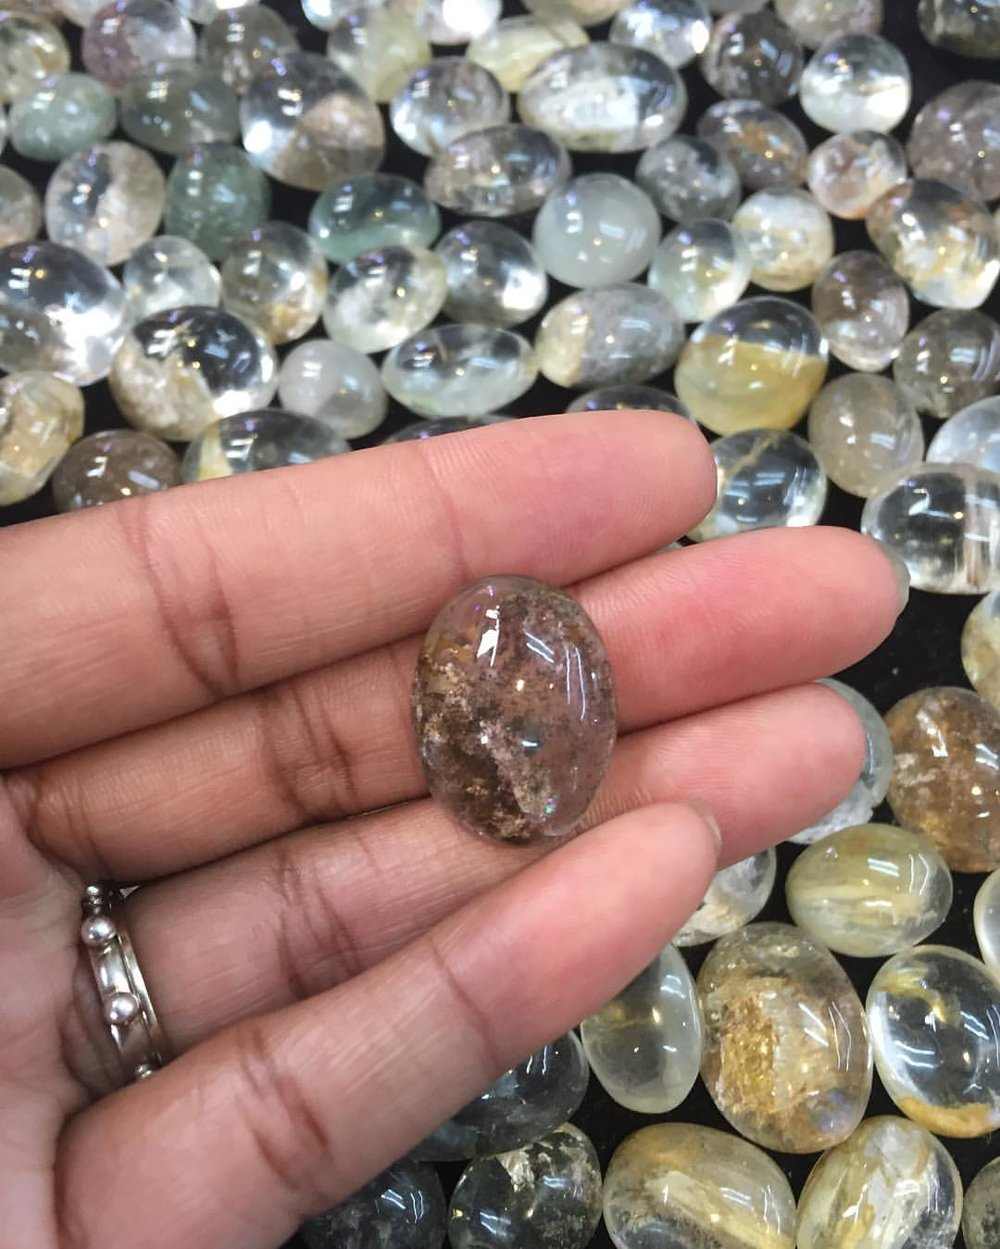 Always in the search of stones. Thai River Stone. Looks like some type of Quartz. For The Love of Siam. #rockhound #crystalover #naturelover #siam #dreamers #musingsbylola #wednesdaymotivation